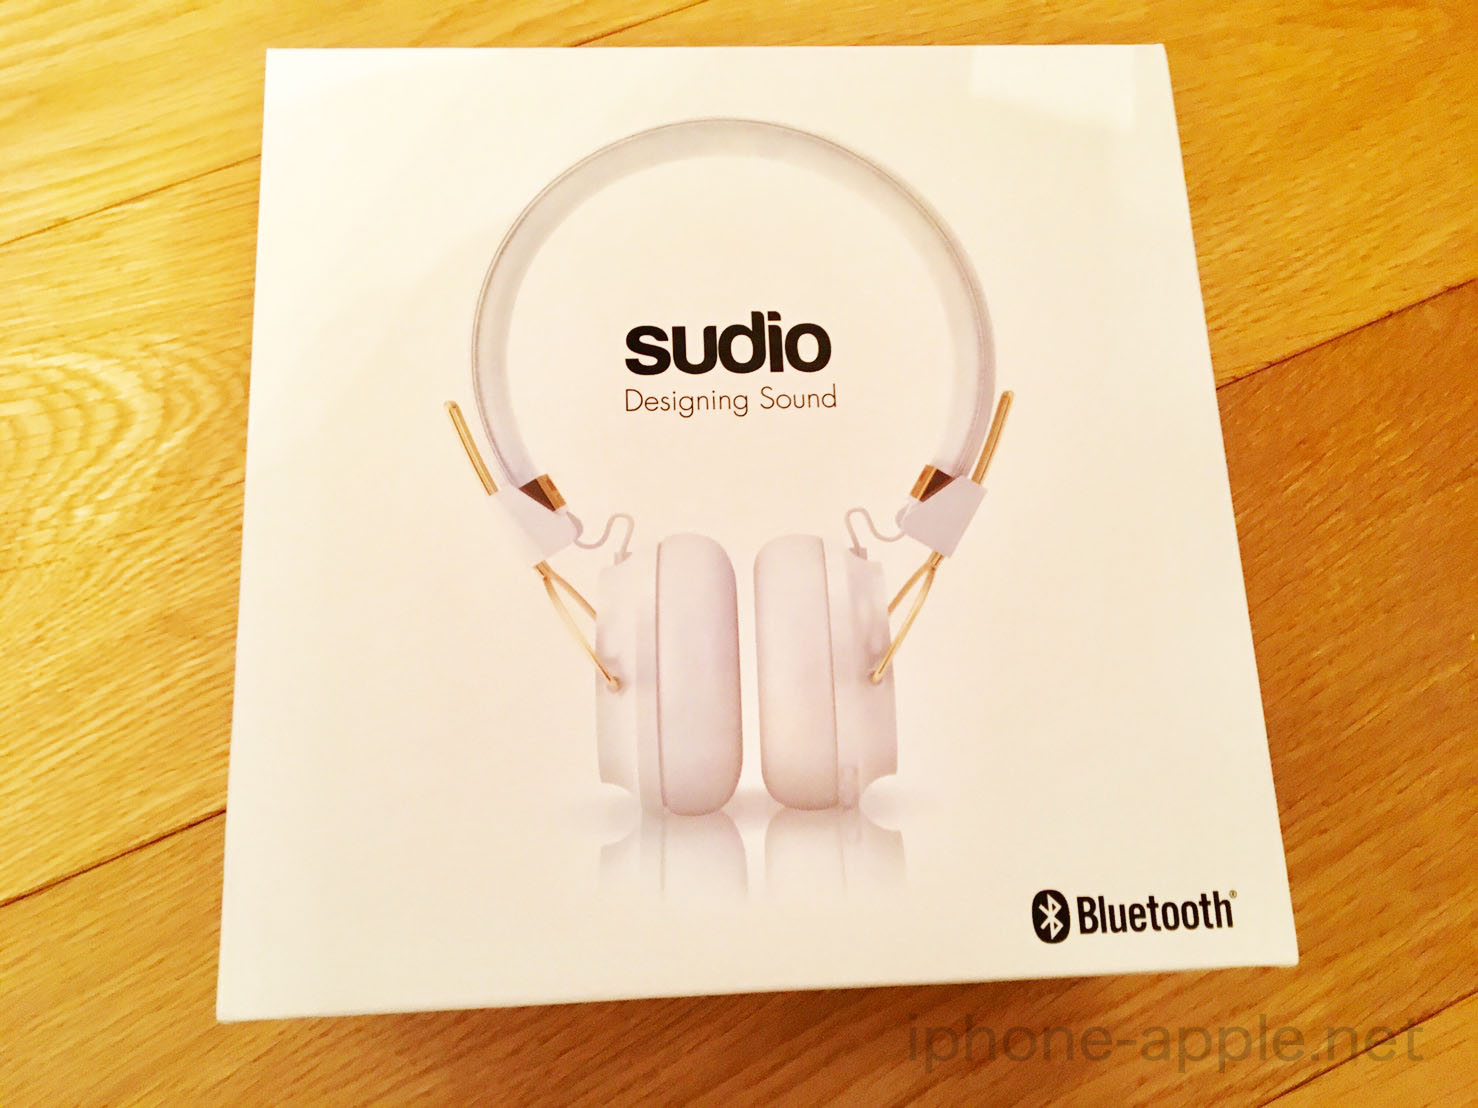 sudio-wireless-headphones-01